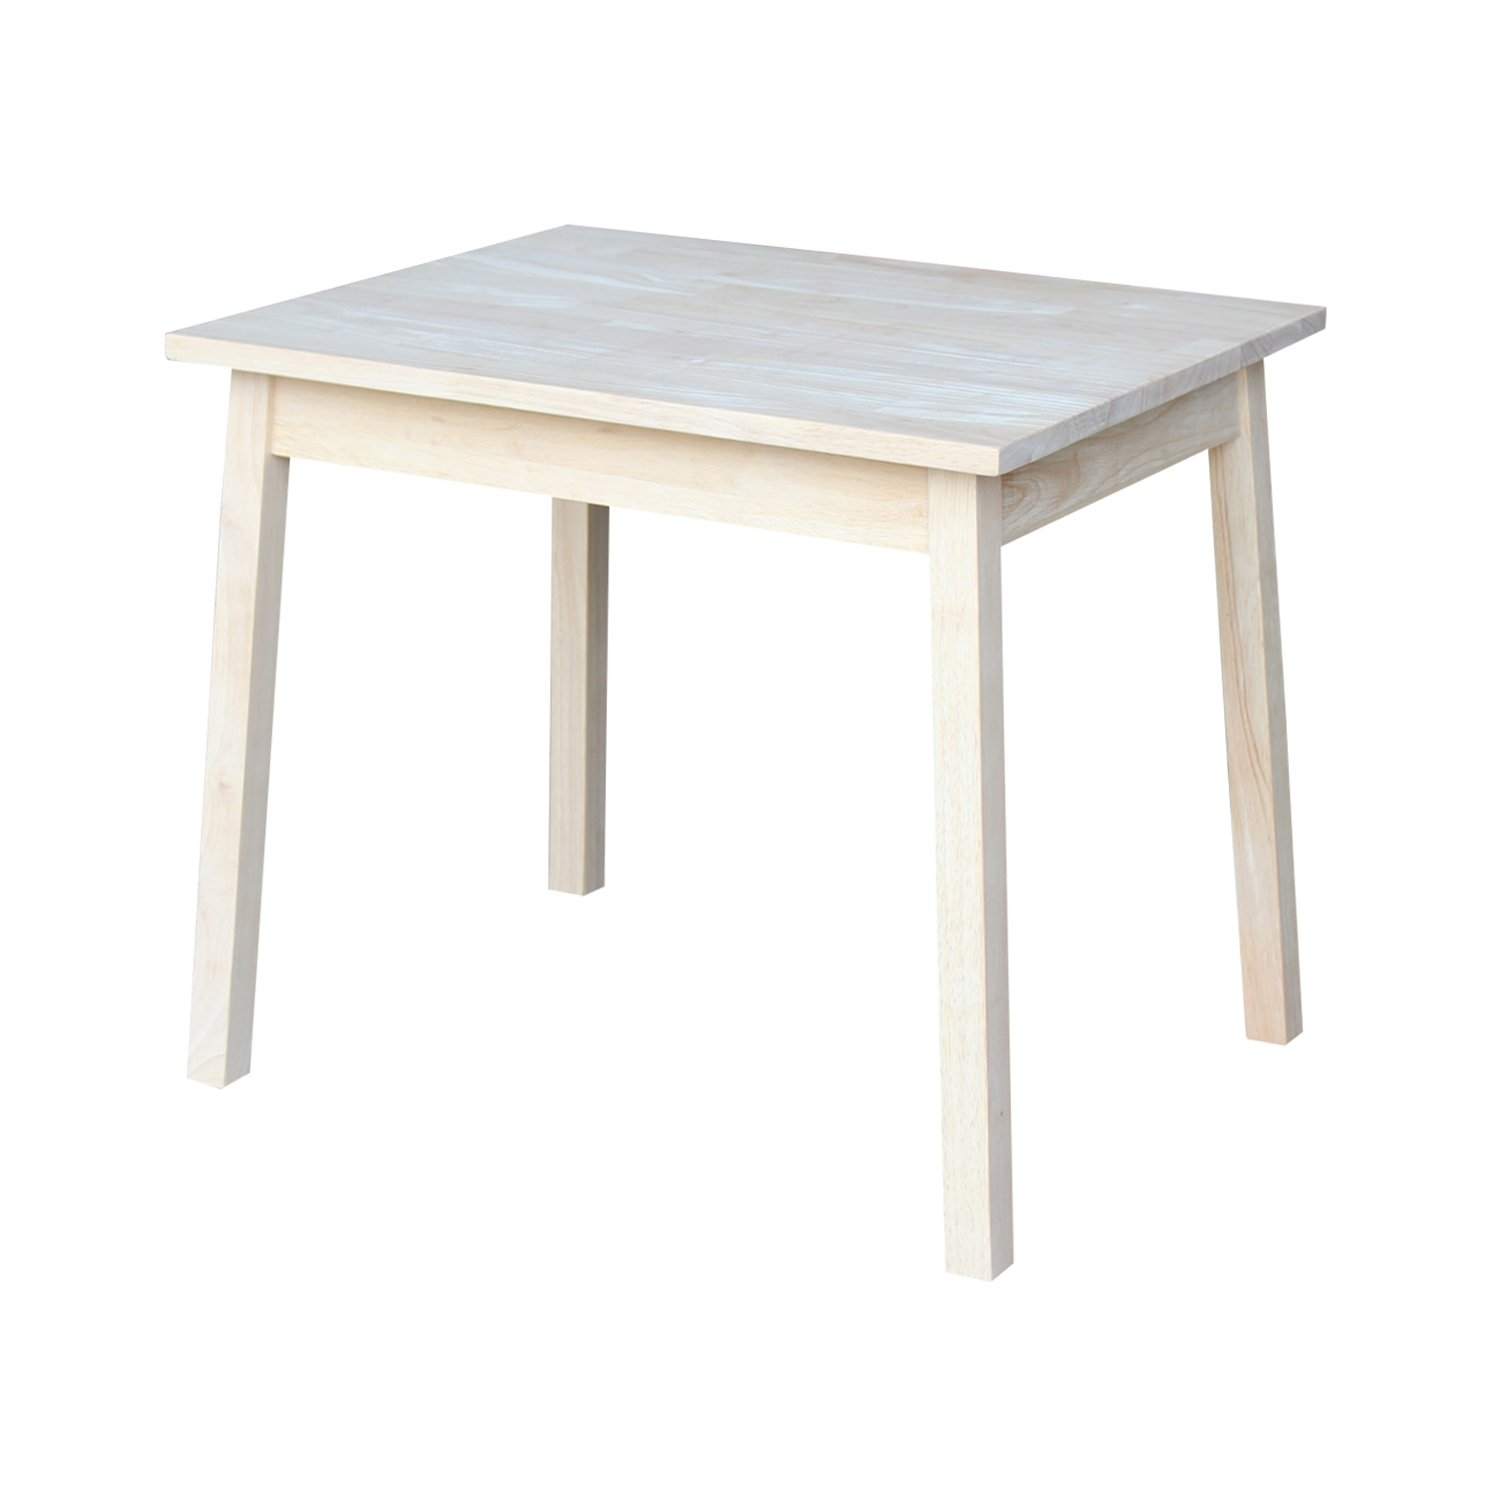 International Concepts Unfinished Child's Table by International Concepts